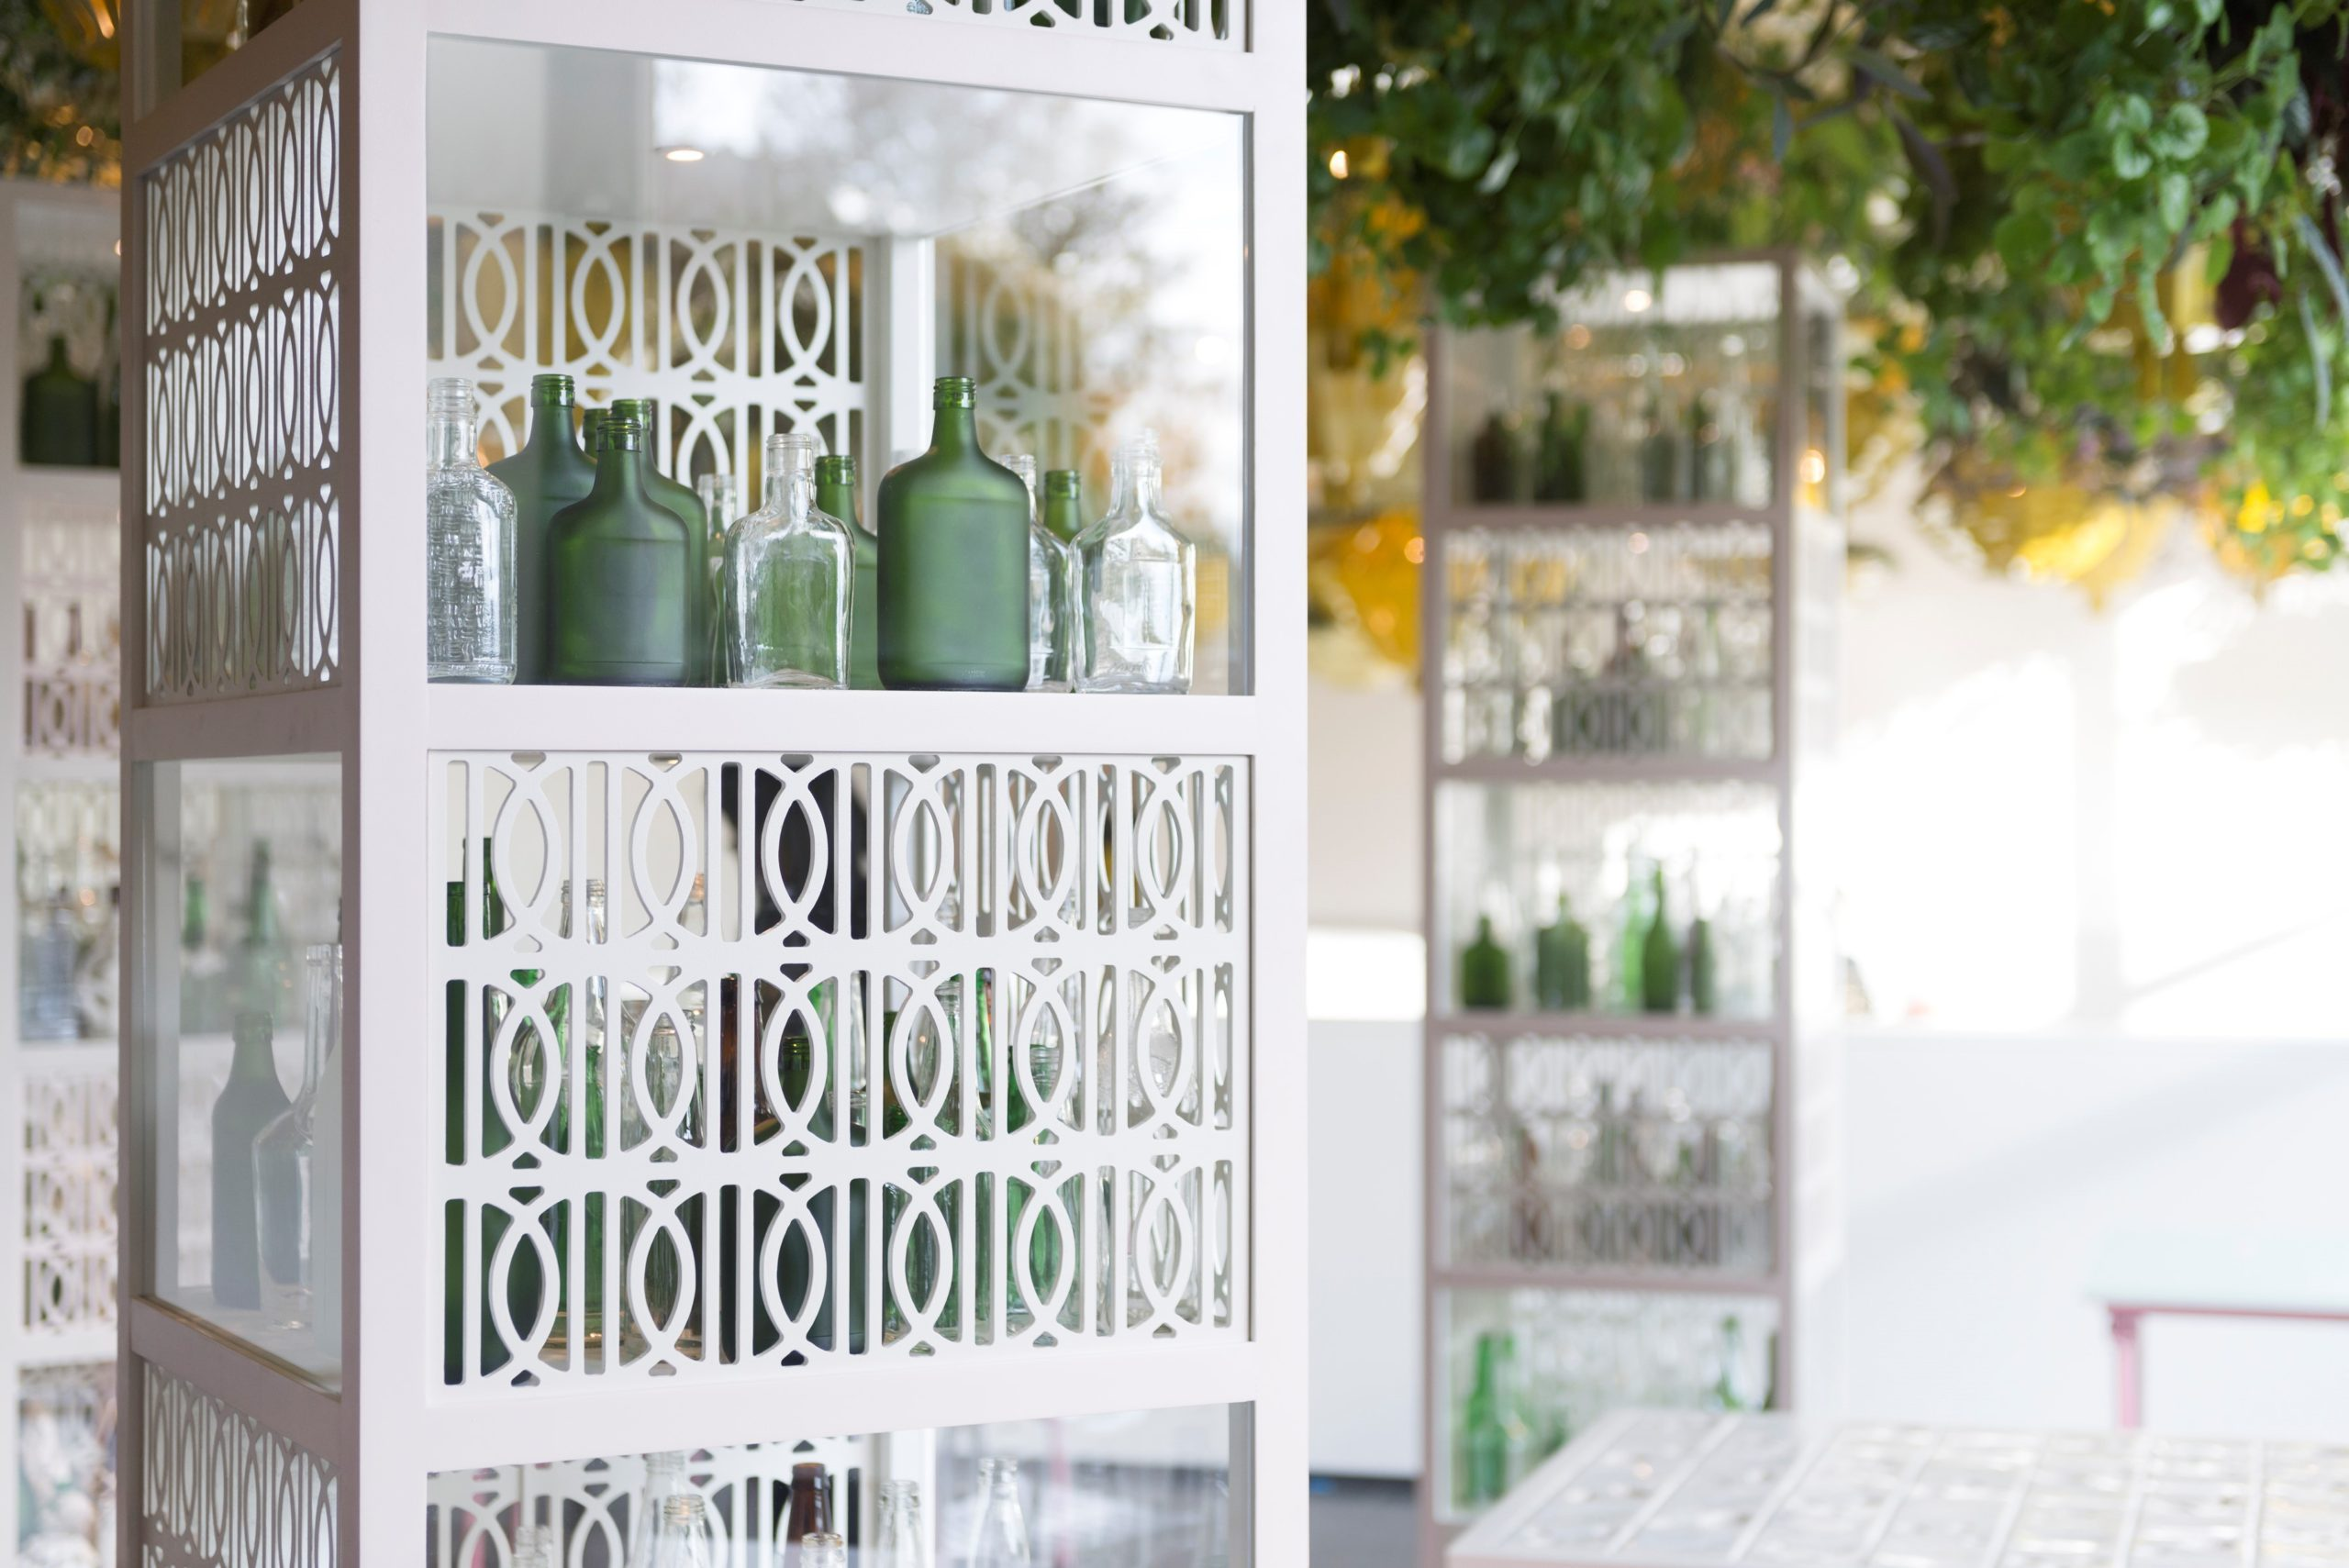 Open 24 Hours, 2017, Found glass bottles of liquor, display cabinets, 8 × 2 × 2 ft. each, Display cabinets co-designed by Navillus Woodworks, Courtesy of the artist.